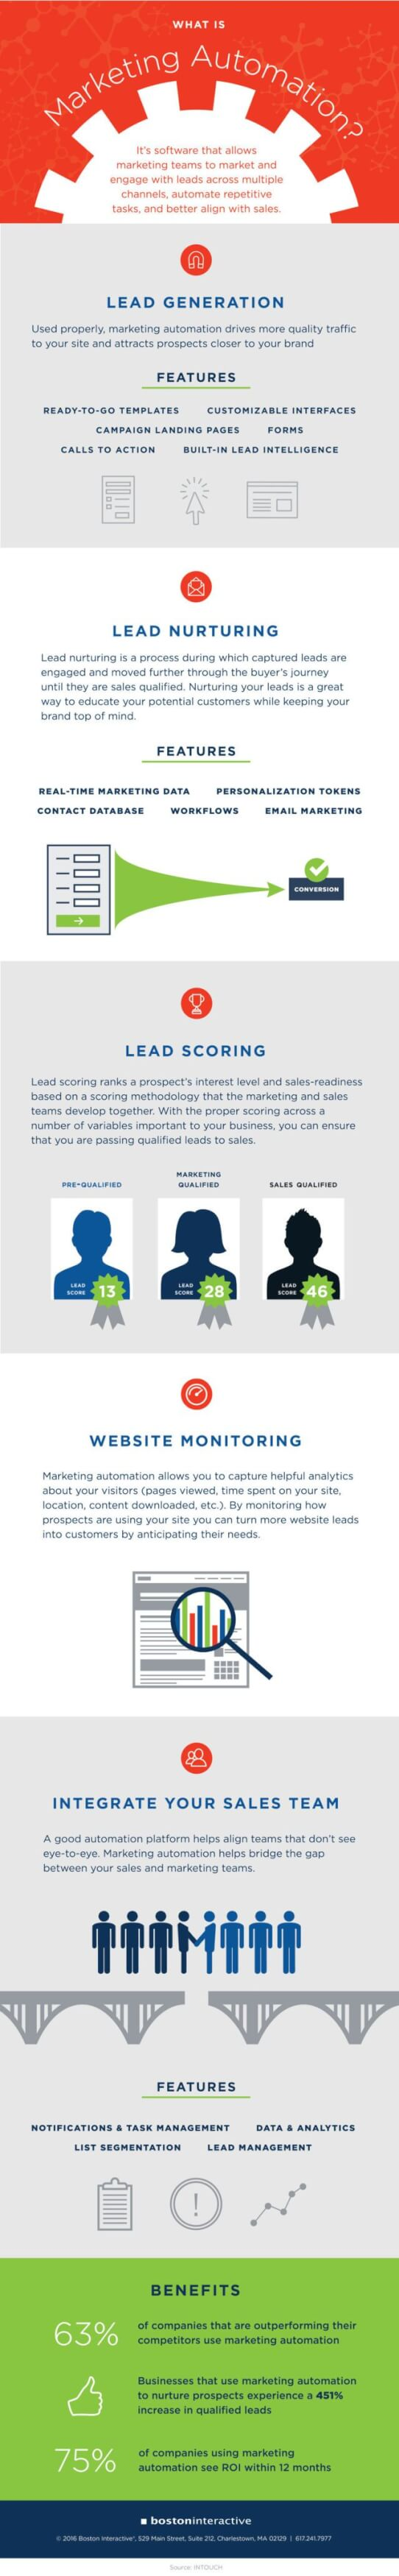 what-is-marketing-automation-infographic